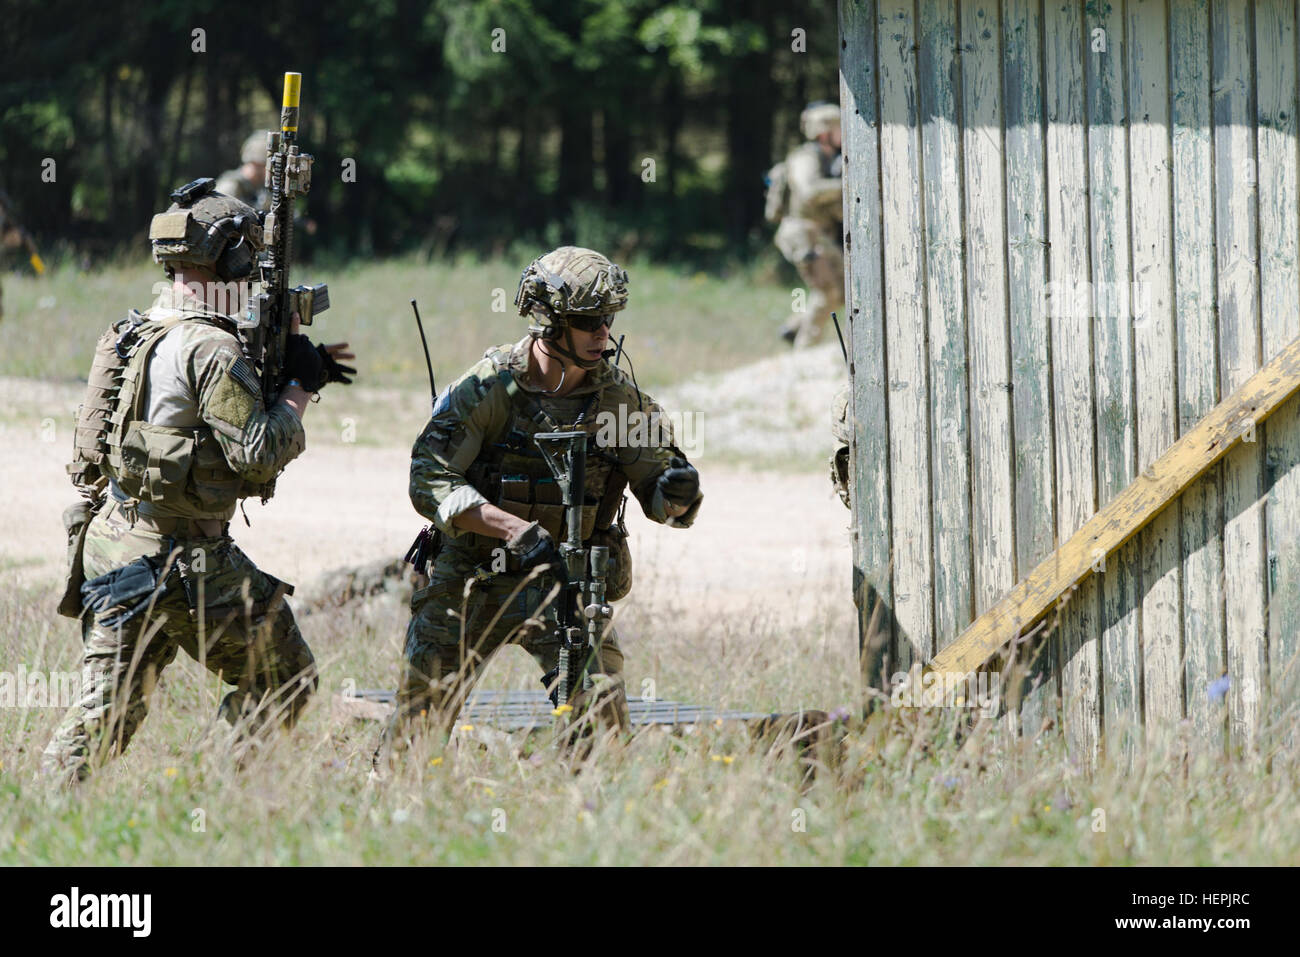 u s army rangers assigned to 75th ranger regiment 1st battalion